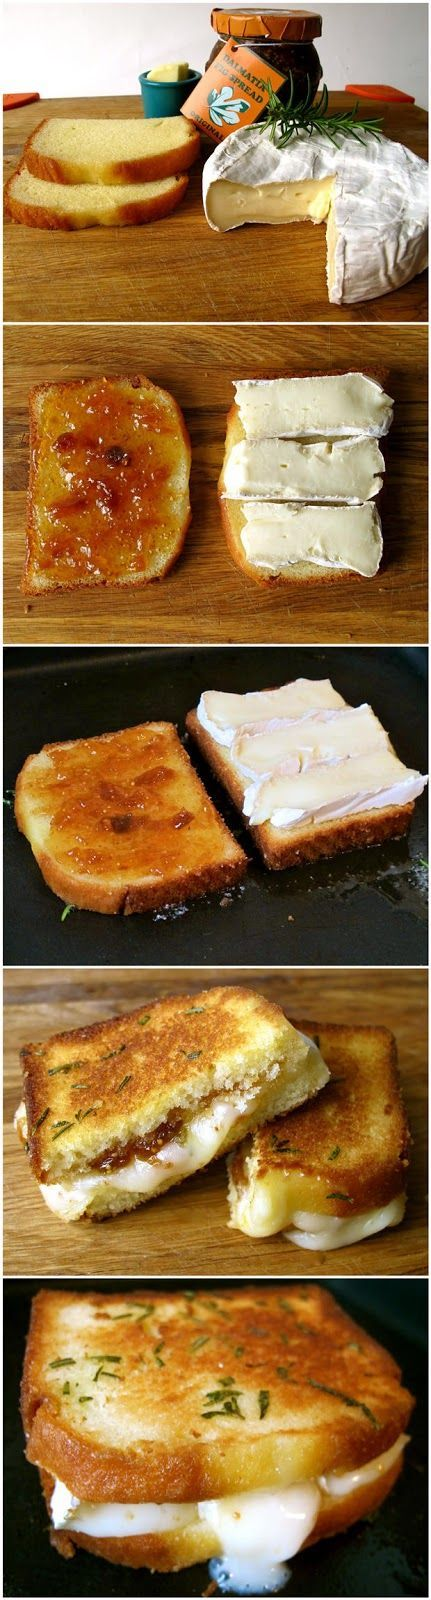 Pound Cake Grilled Cheese With Brie | Nosh-up